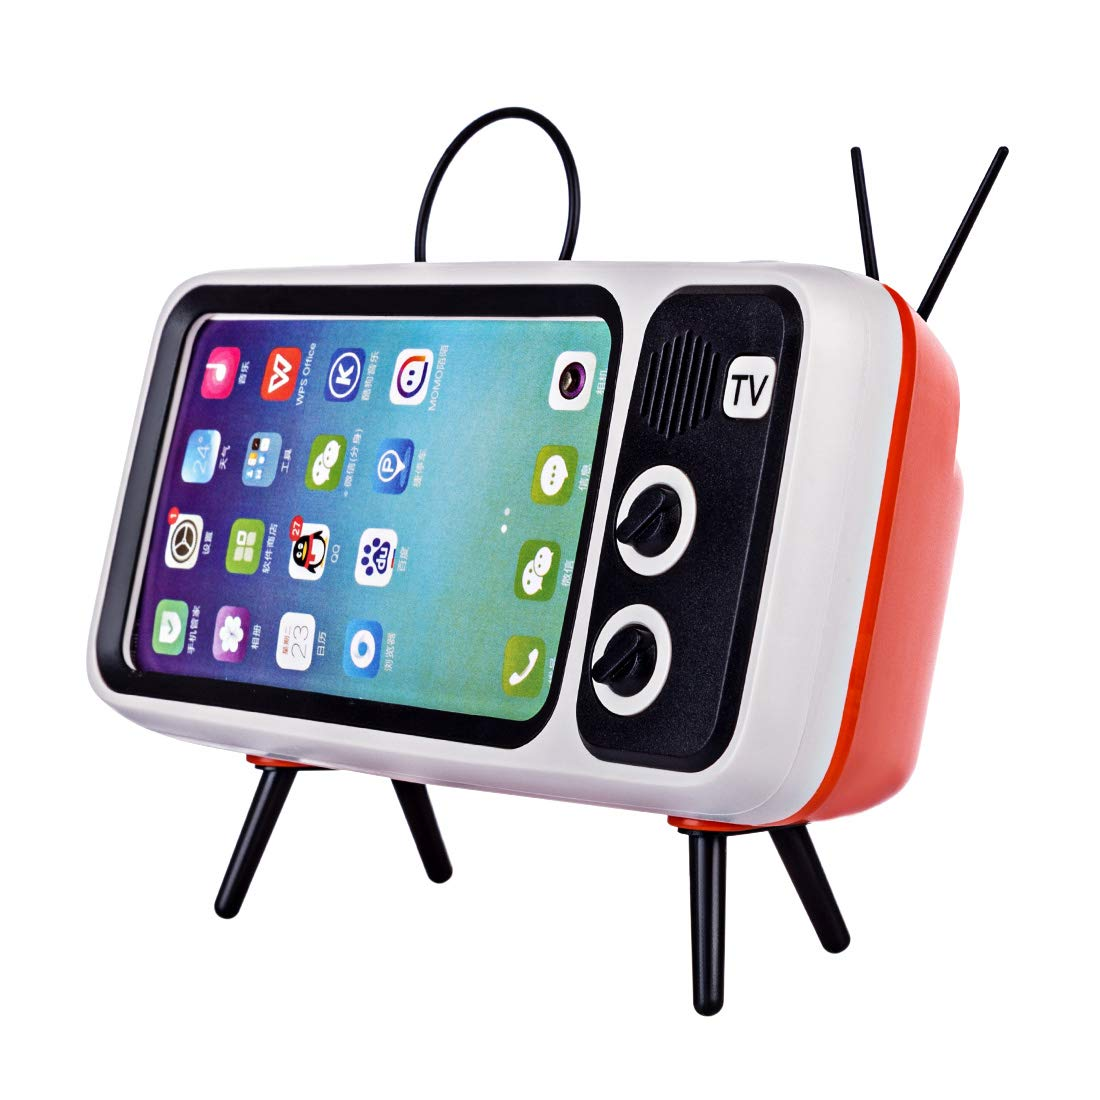 Goshfun PTH800 Retro TV Shape Mobile Phone Holder, Table Cell Phone Accessories, Desktop Mobile Phone Stand for Phones with 4.7-5.5 Inch Screen, Orange by Goshfun